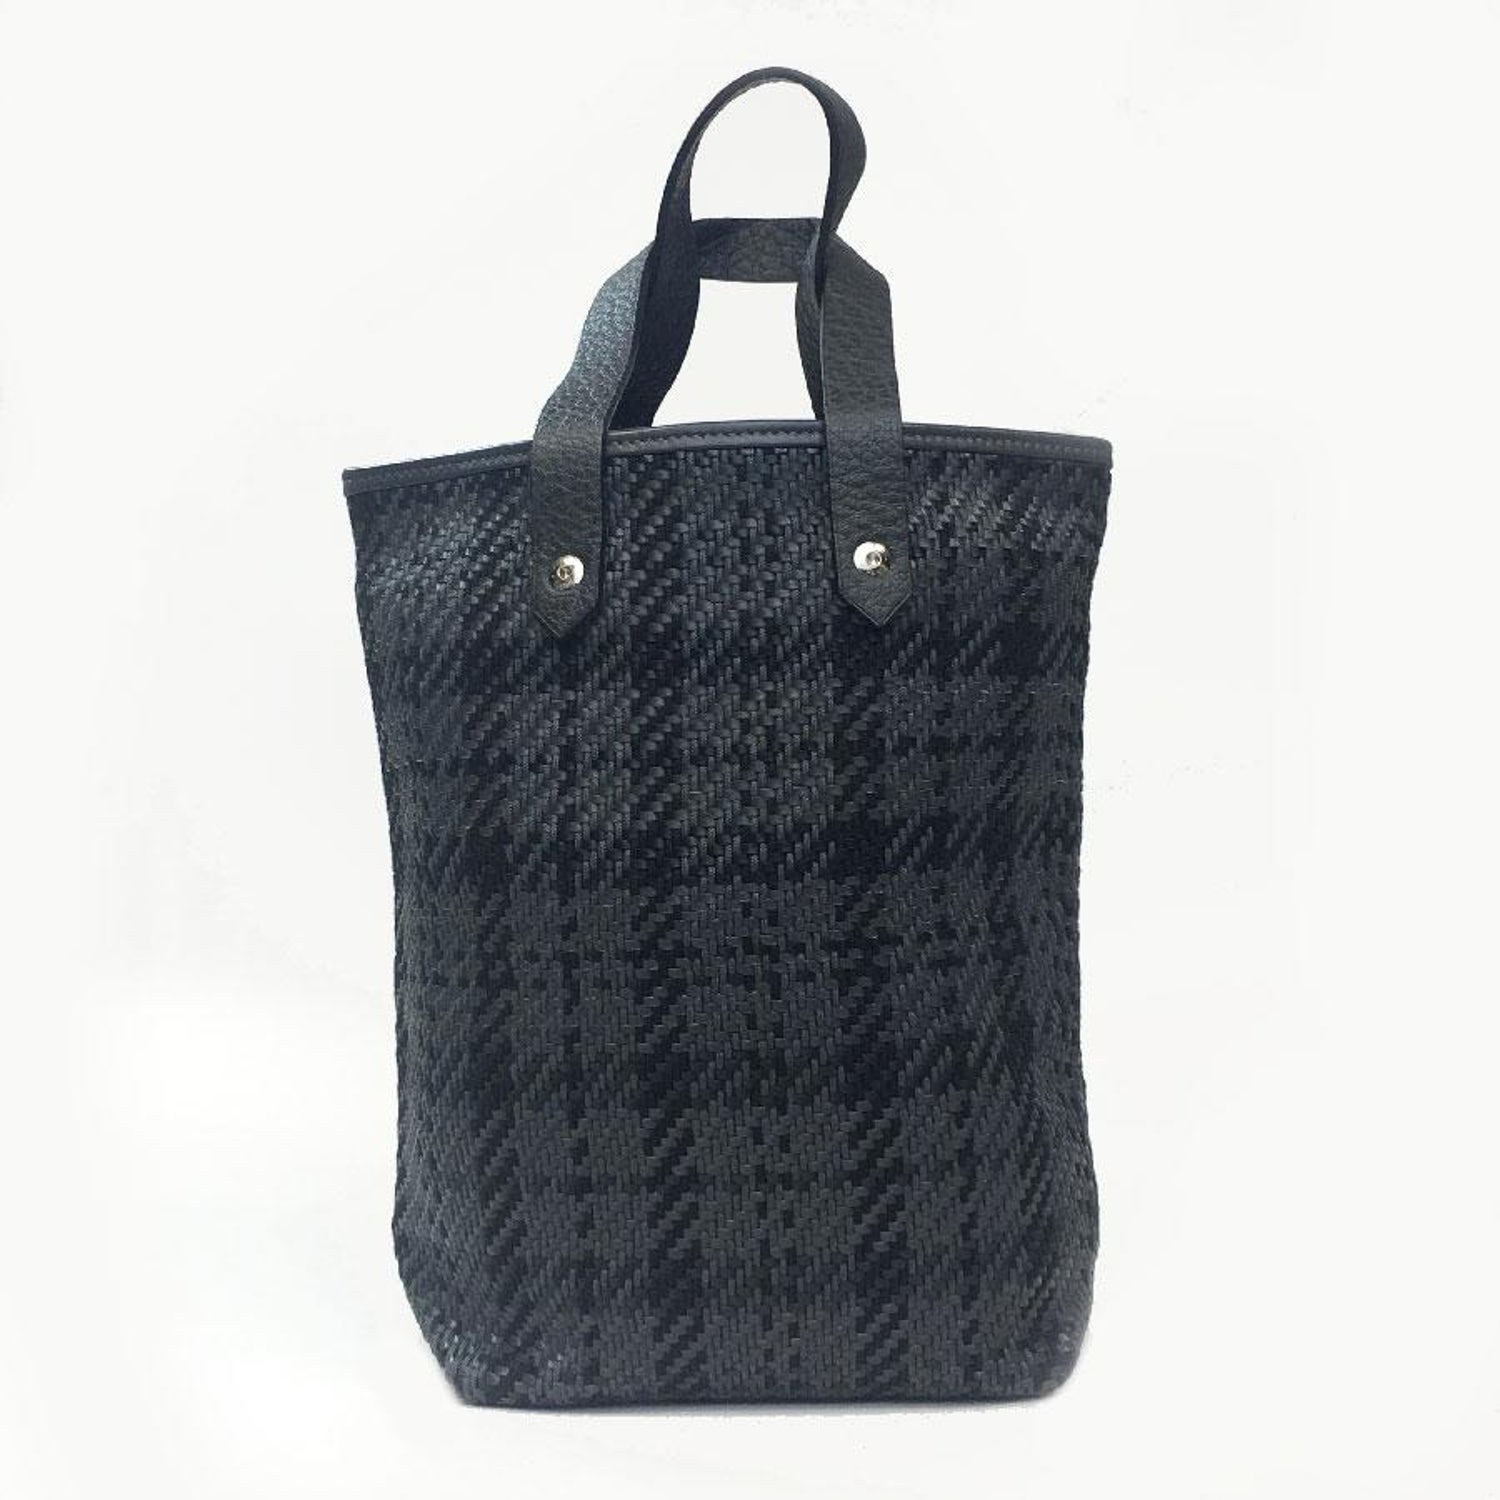 09e25d557c Hermes Small Bag In Black And Charcoal Fabric Leather. A ...